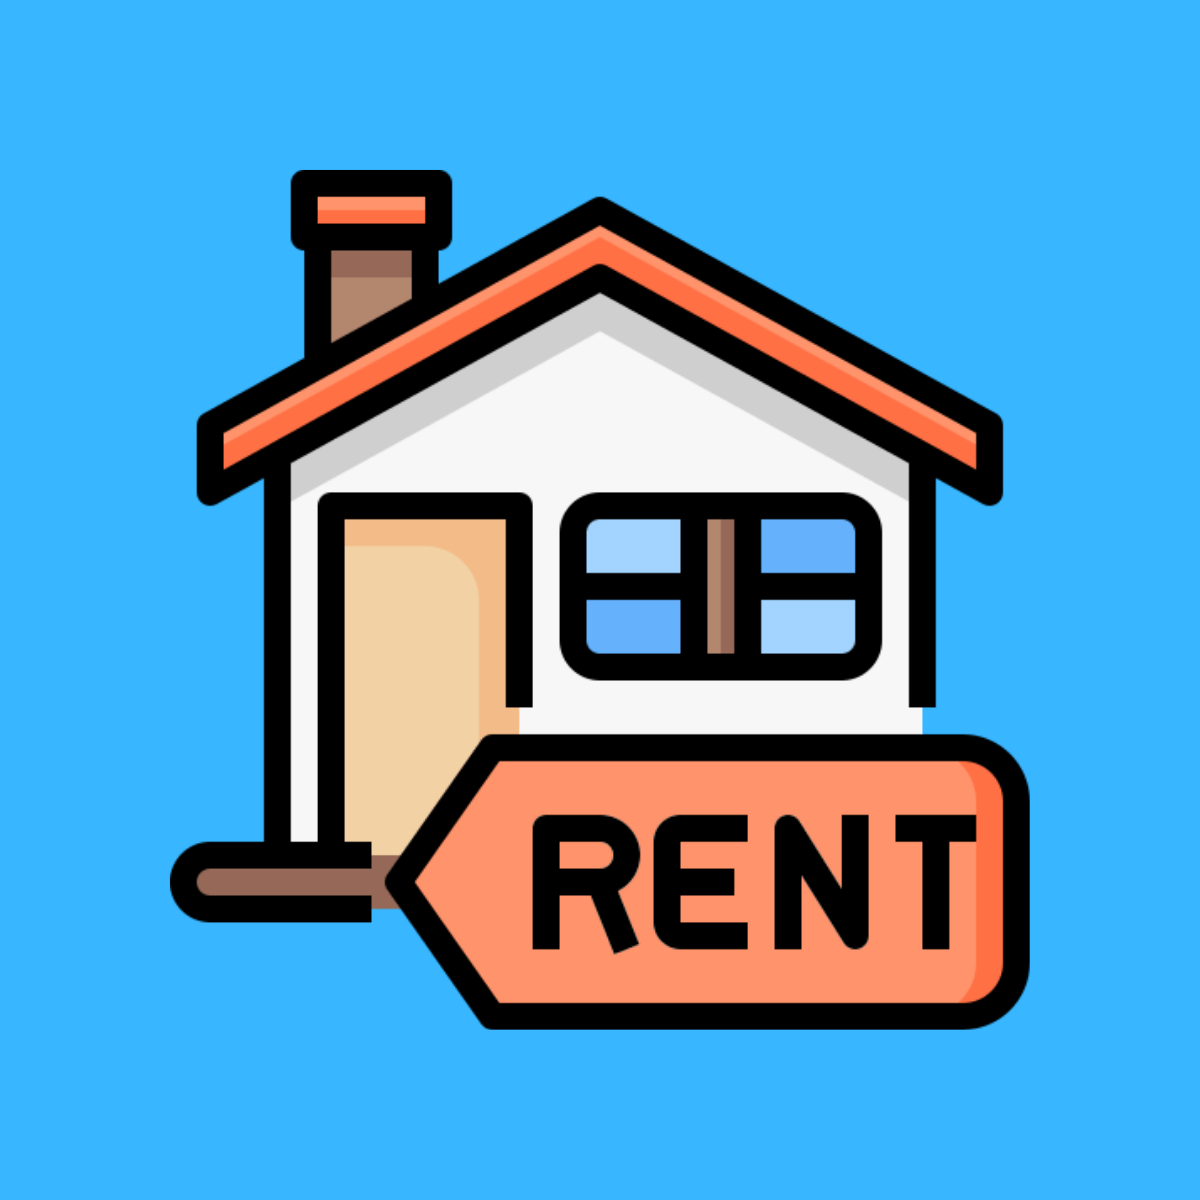 What You Need to Know Before Becoming a Landlord